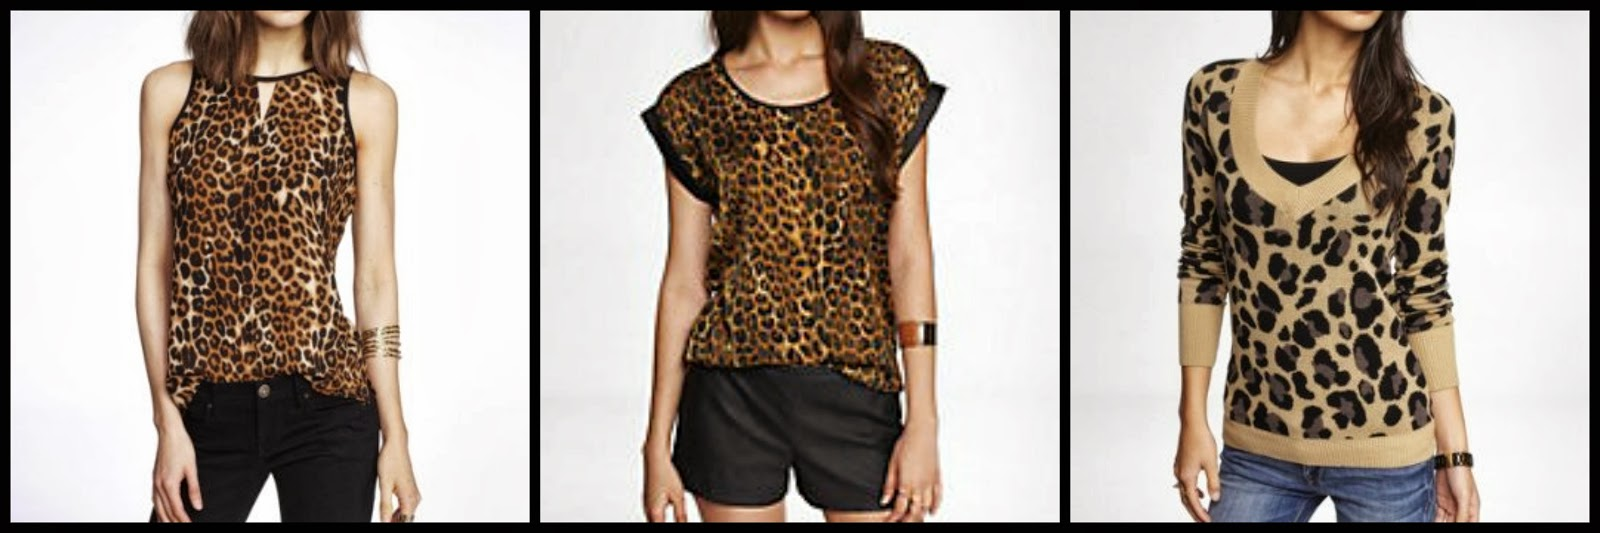 Express leopard halter top, easy tee, jacquard sweater